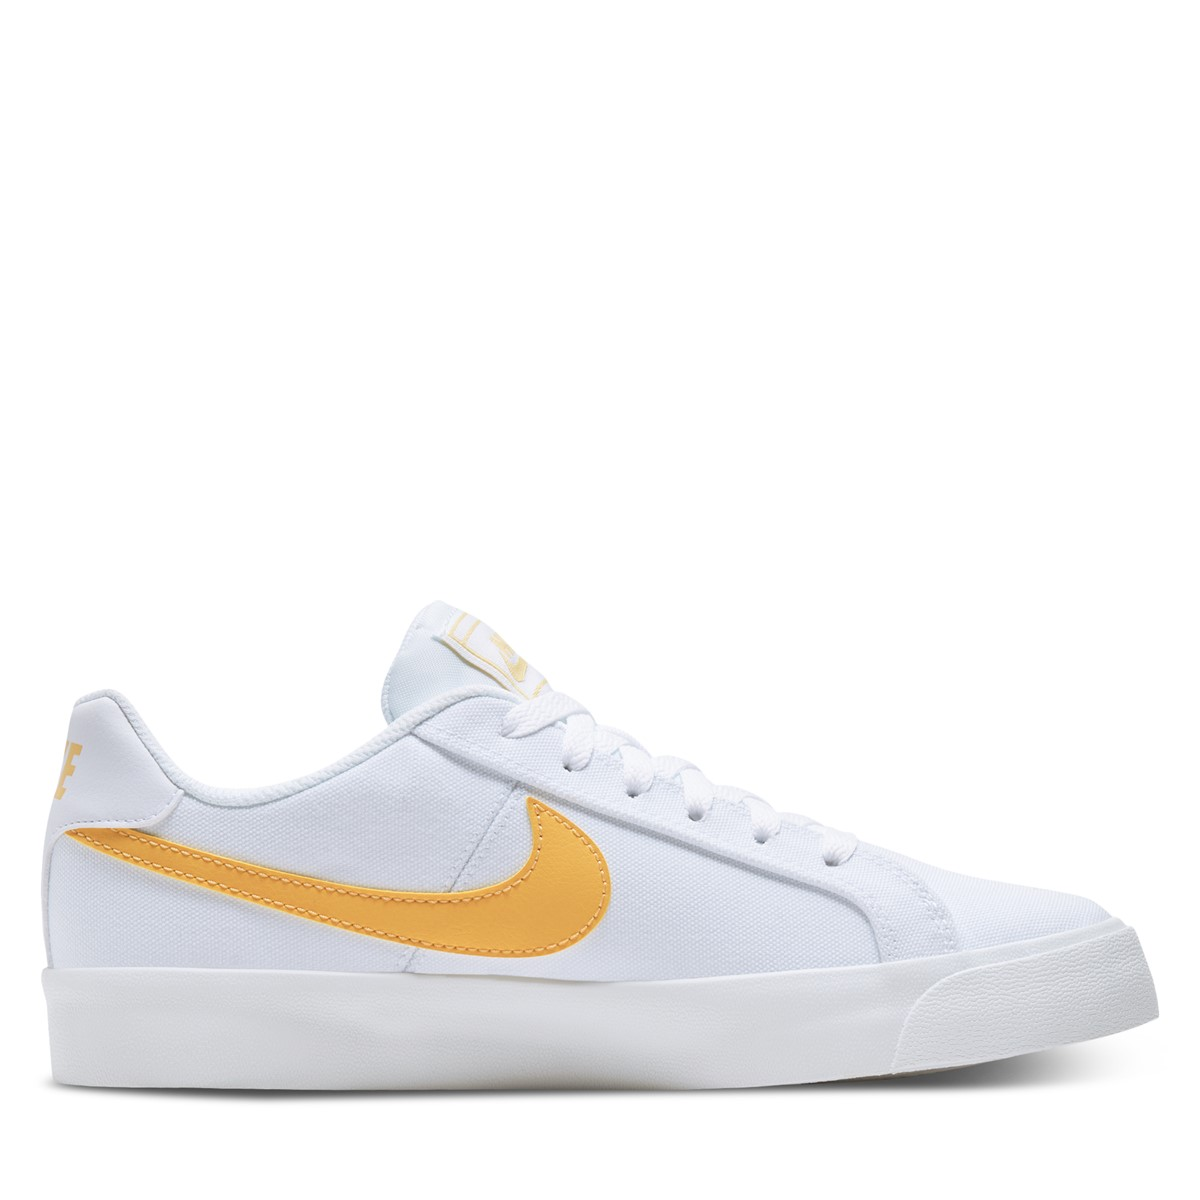 Women's Court Royale AC Sneakers in White/Orange